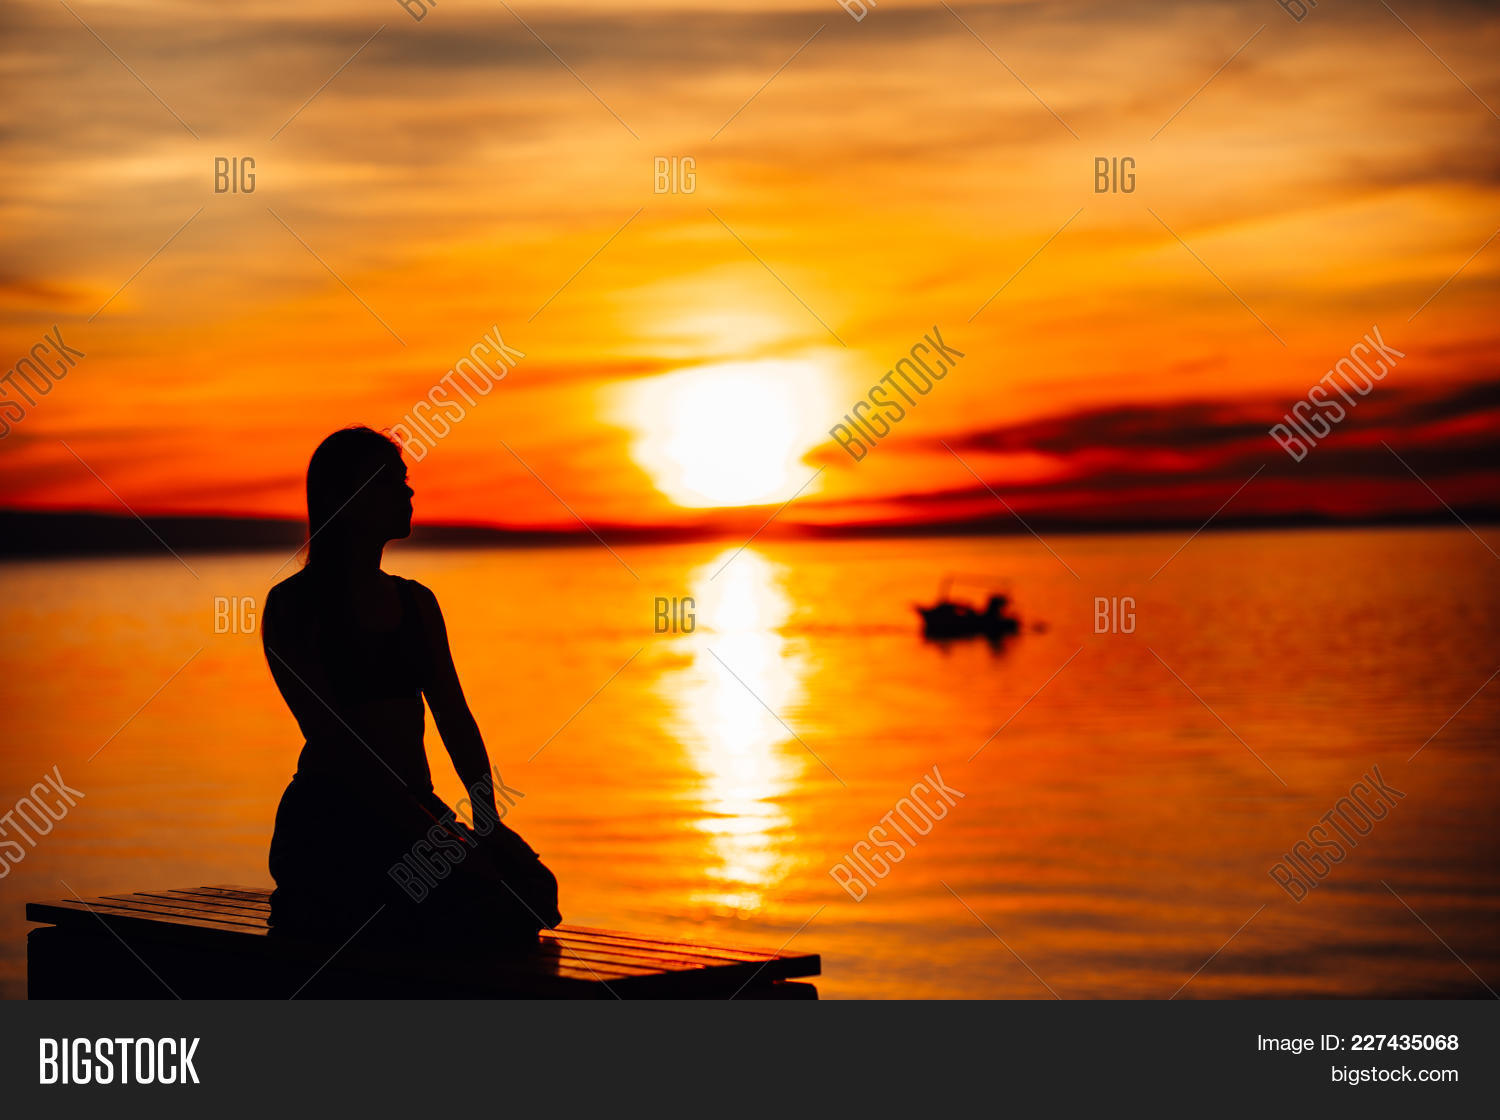 activity,awakening,balance,breath,breathing,buddhism,calm,care,carefree,clairvoyance,concentration,energy,equilibrium,eye,feeling,focused,free,happiness,harmony,healthy,joga,mantra,meditate,meditating,meditation,mental,mind,mindful,mindfulness,nature,ocean,om,peace,peaceful,practice,prayer,relax,religion,religious,soul,spiritual,spirituality,think,third,trance,transcendental,vitality,woman,yoga,zen